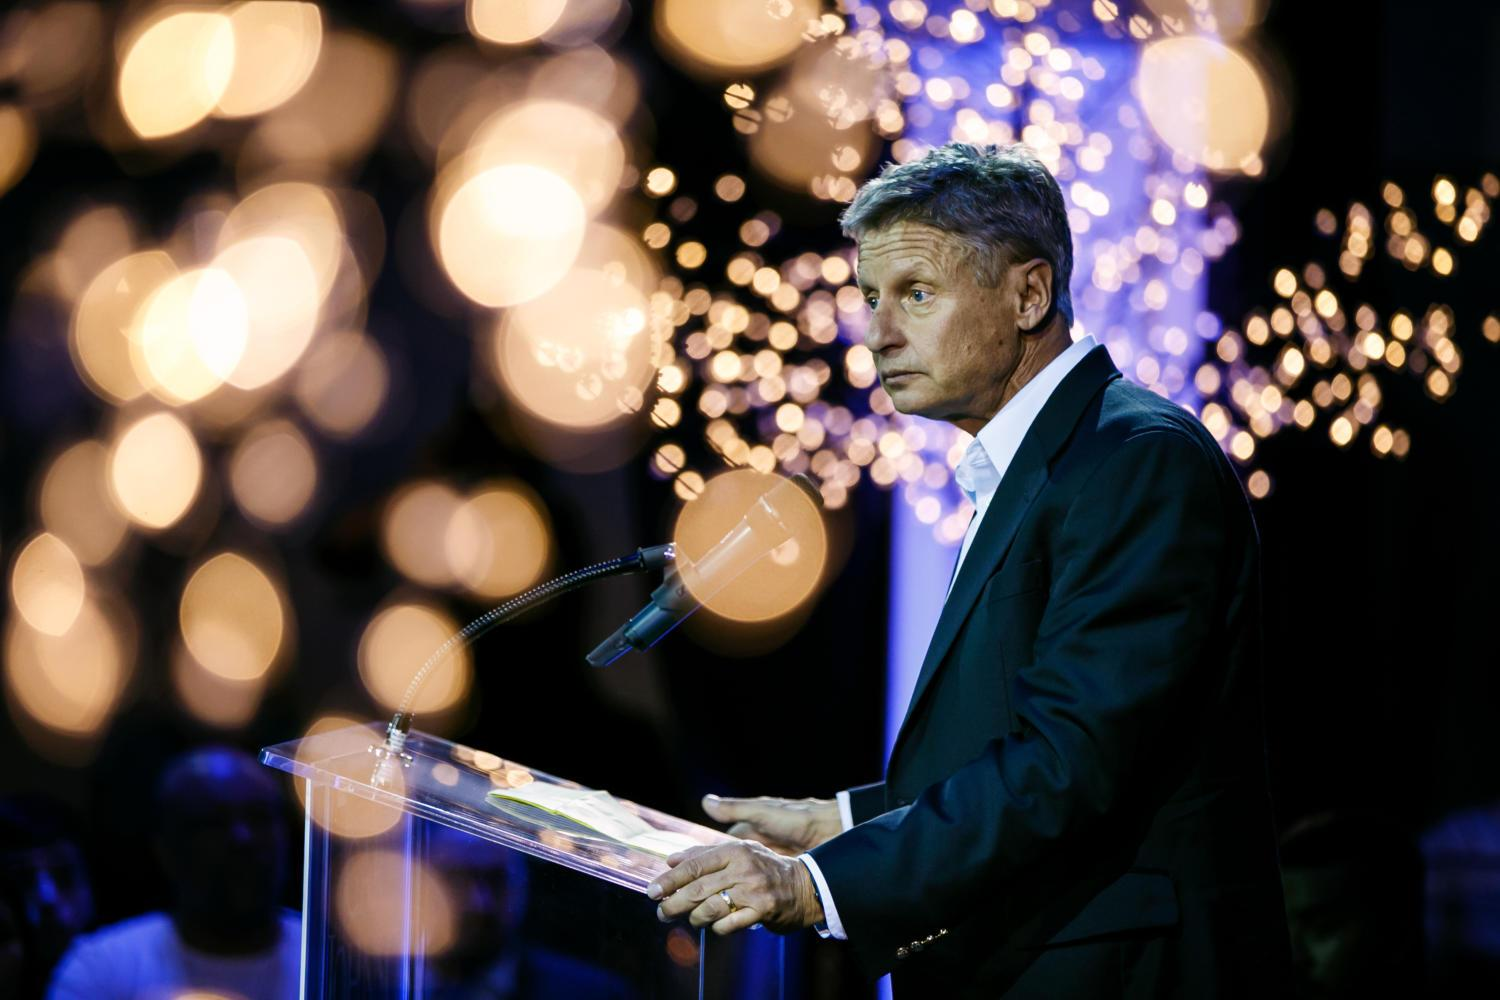 Gary Johnson, the former Libertarian candidate for president, speaks at a campaign event in Los Angeles Oct. 19, 2016. (Marcus Yam/Los Angeles Times/TNS)